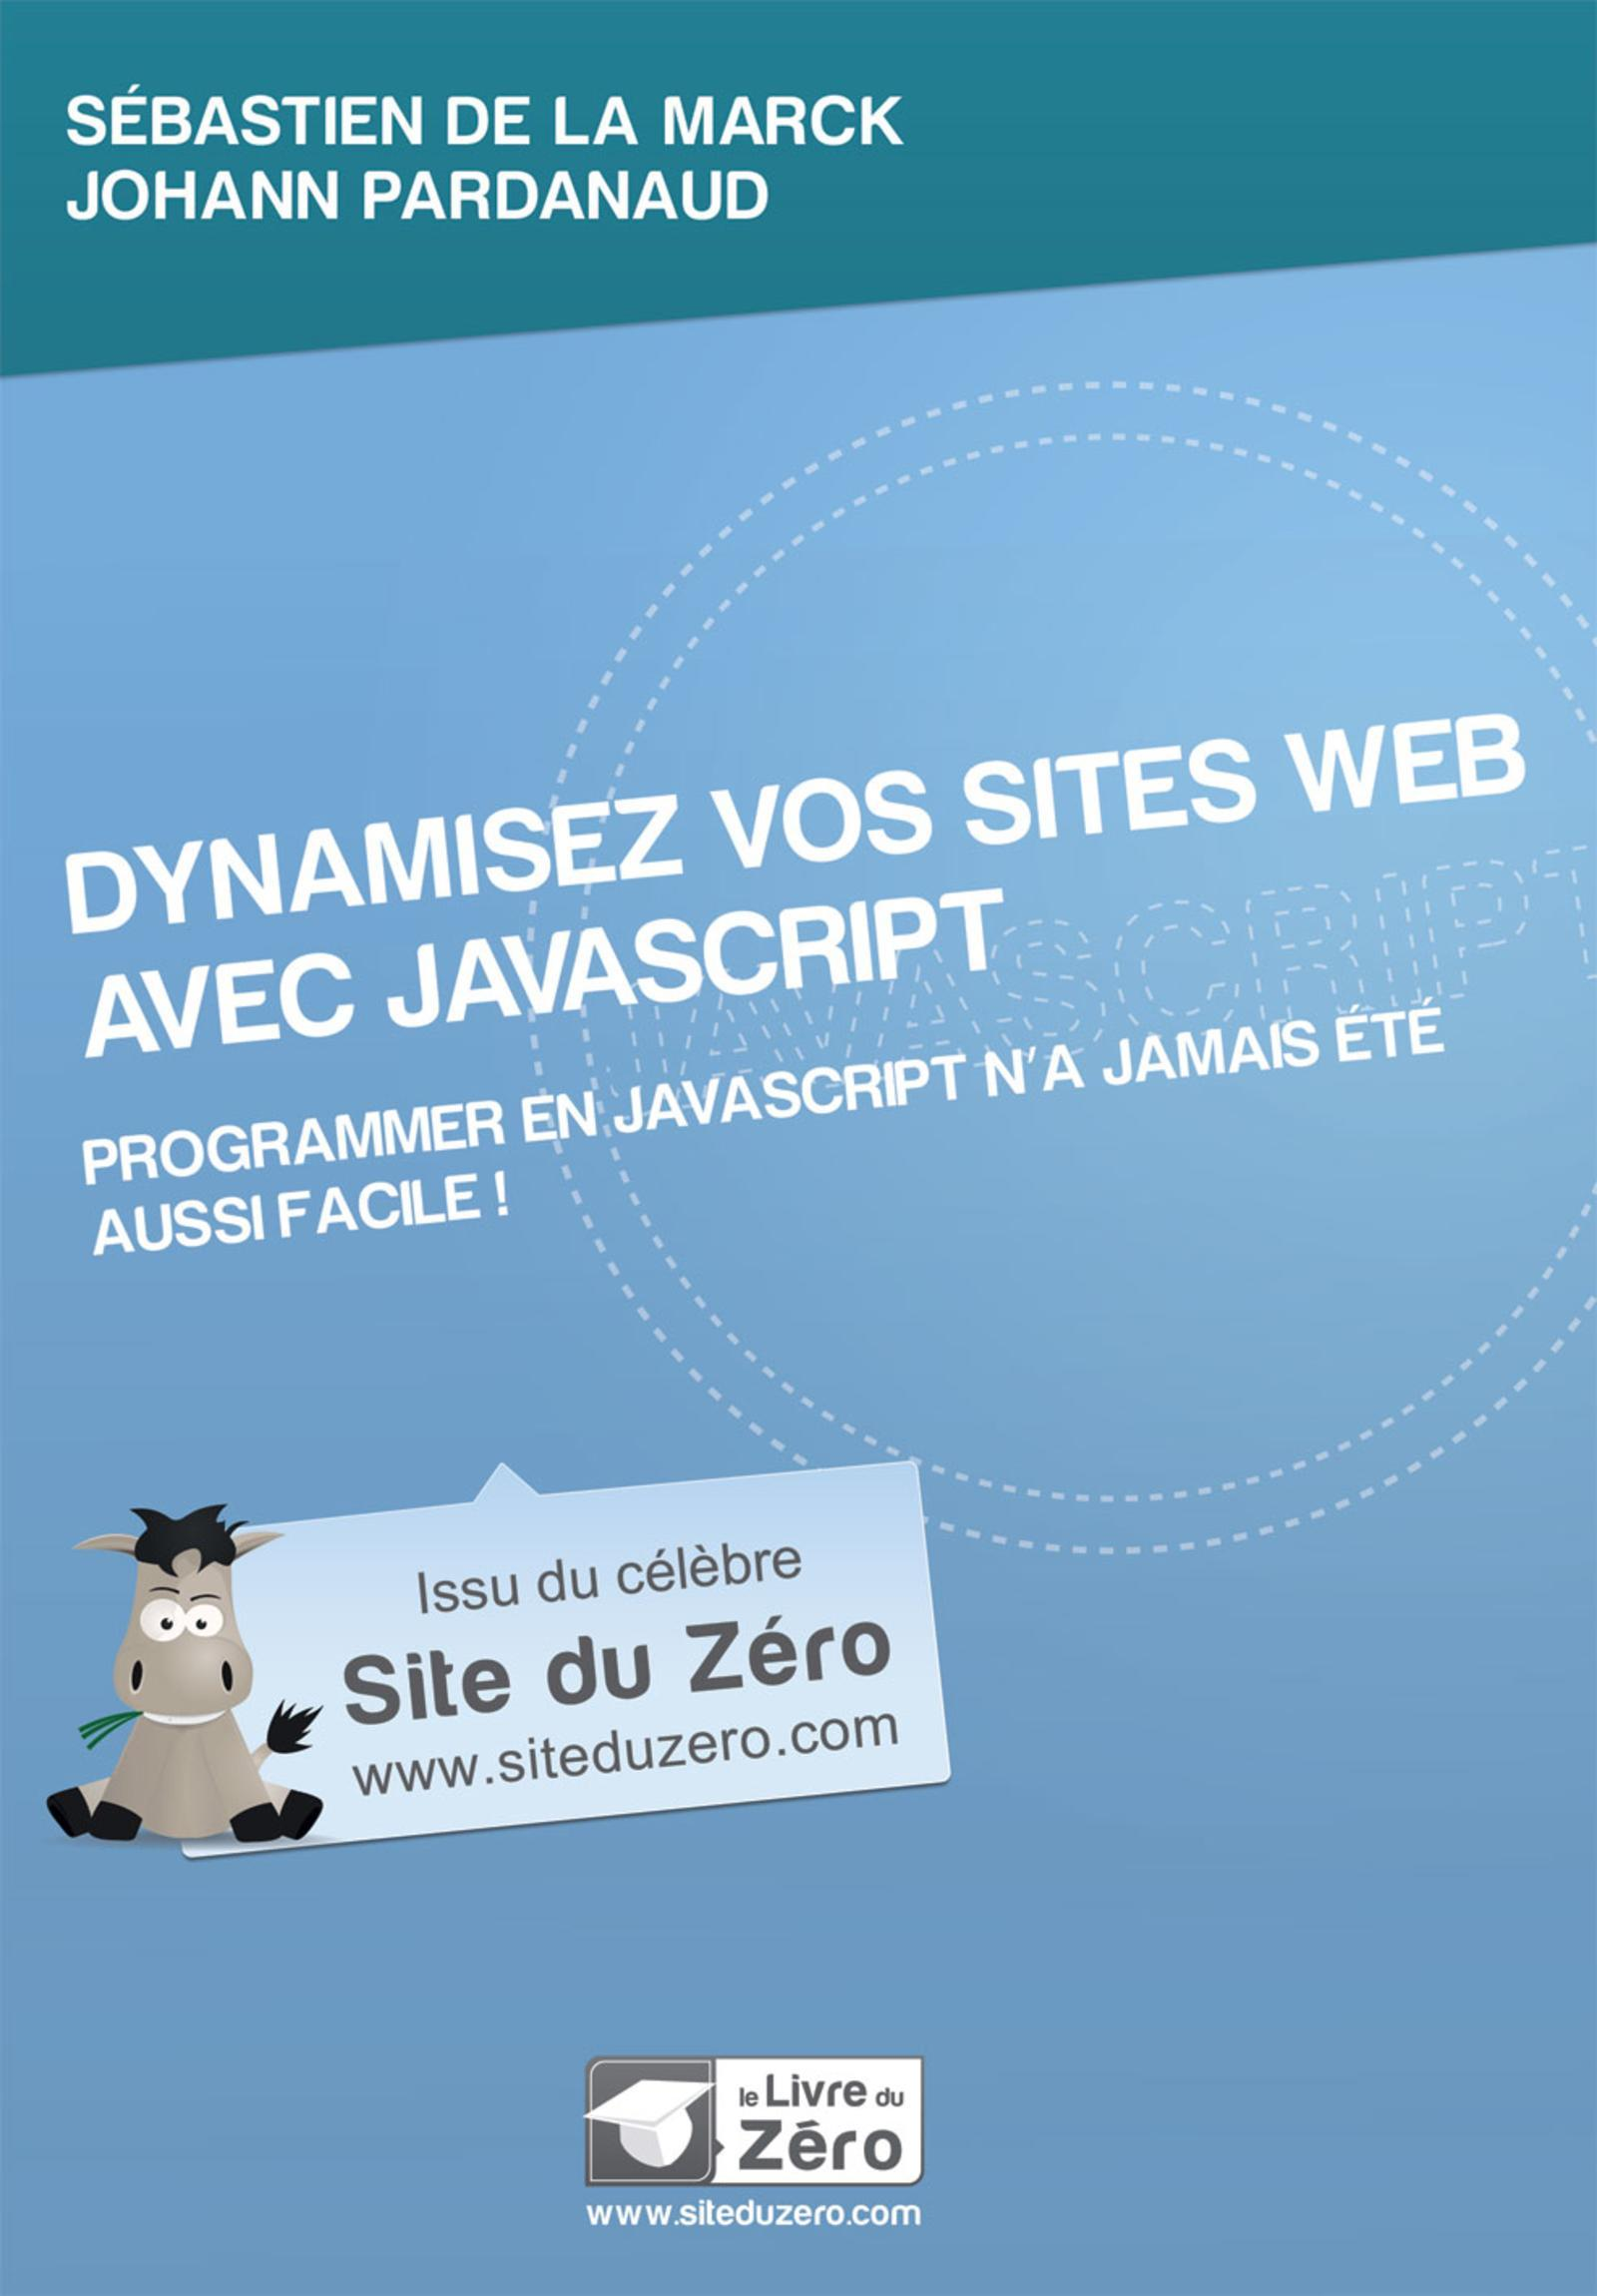 DYNAMISEZ VOS SITES WEB AVEC JAVASCRIPT